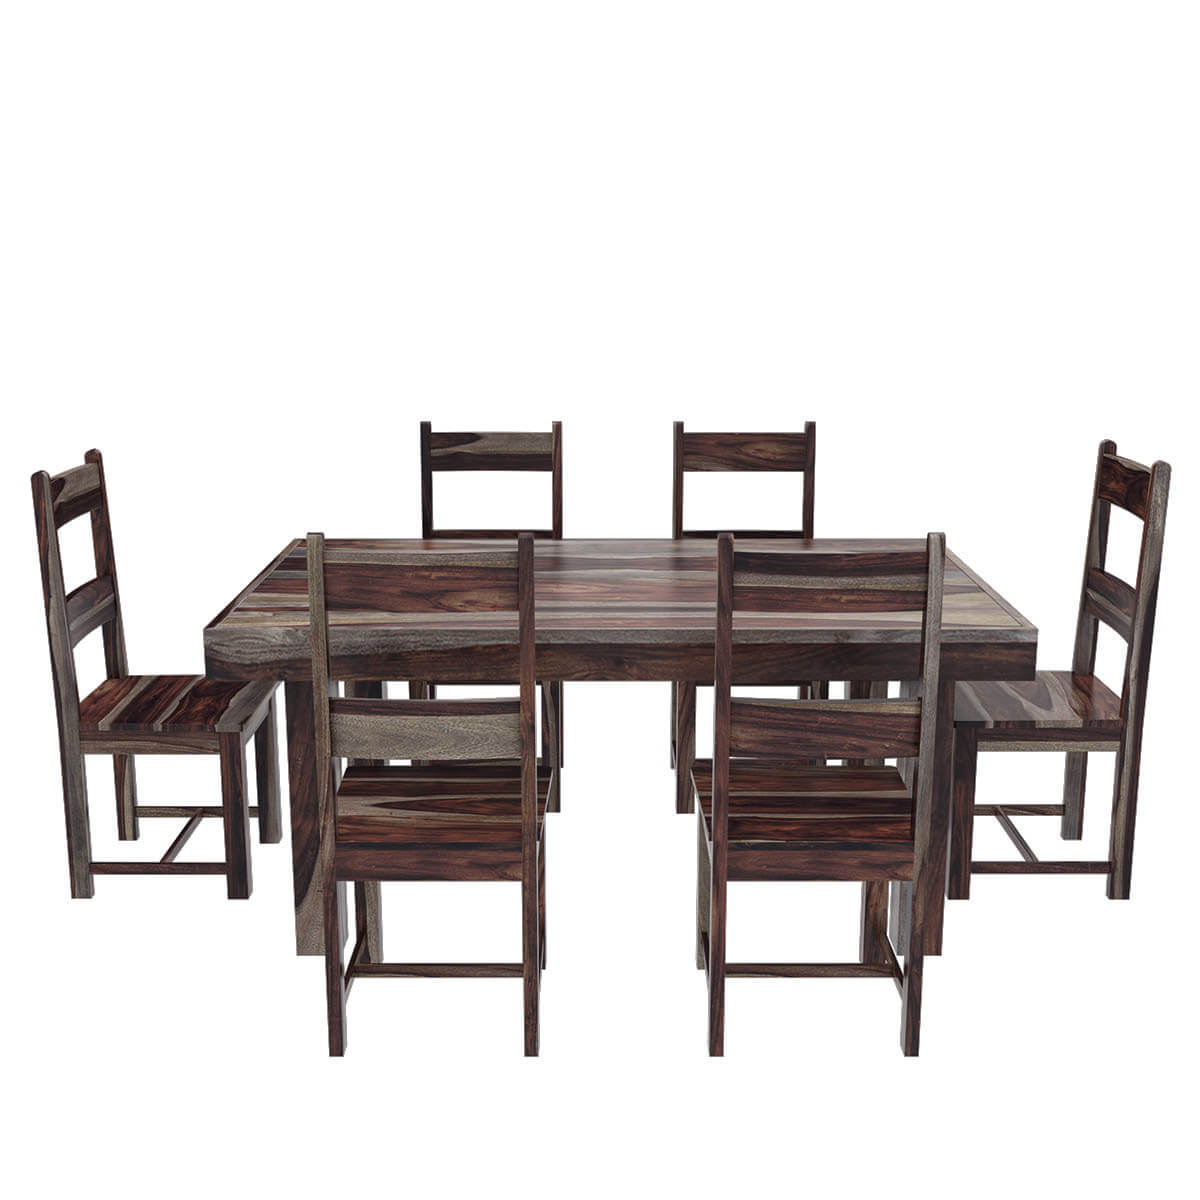 Dining Room Table And Chairs Frisco Modern Solid Wood Casual Rustic Dining Room Table